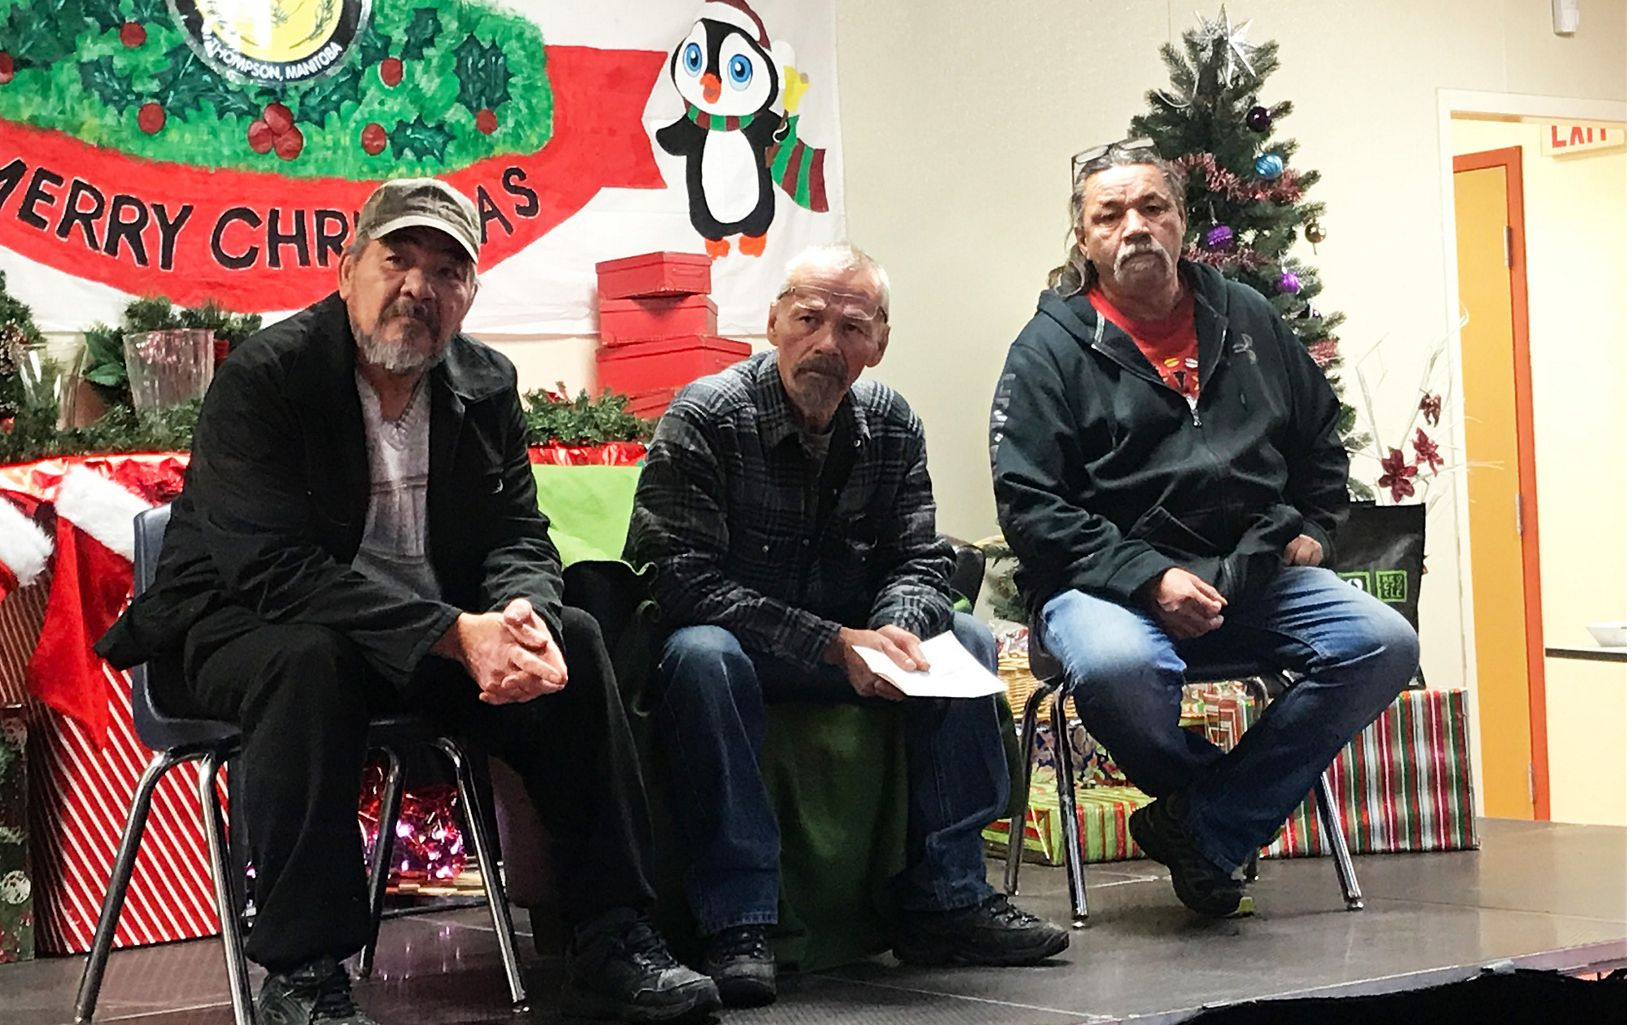 Elders at the northern Manitoba moose workshop organized by Nature United and partners.